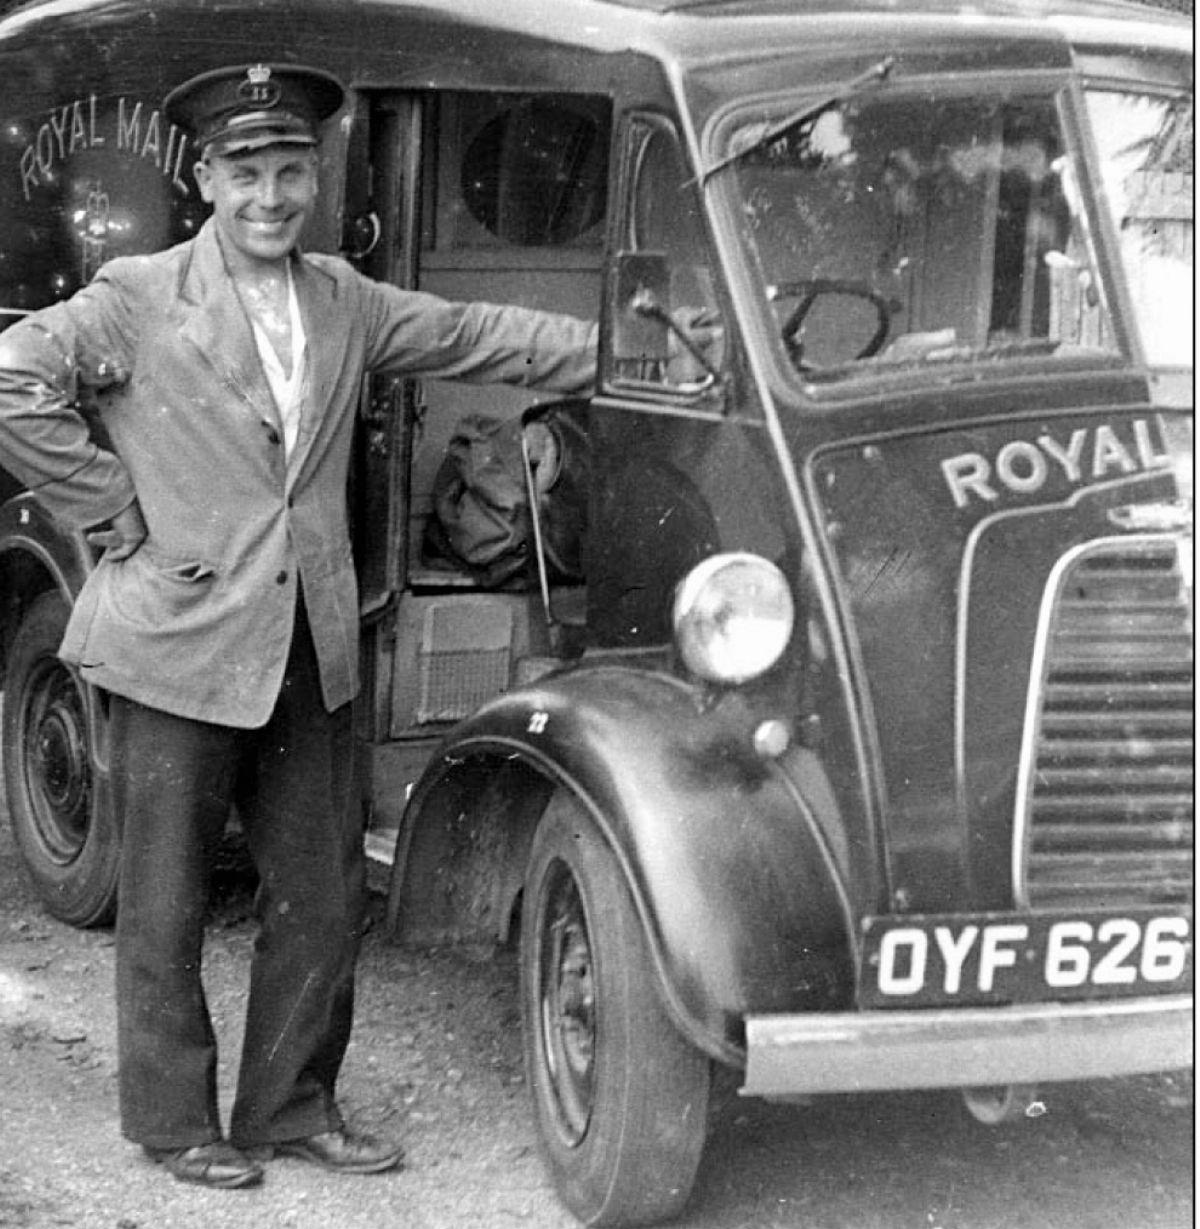 One of the local post vans in the 1950s